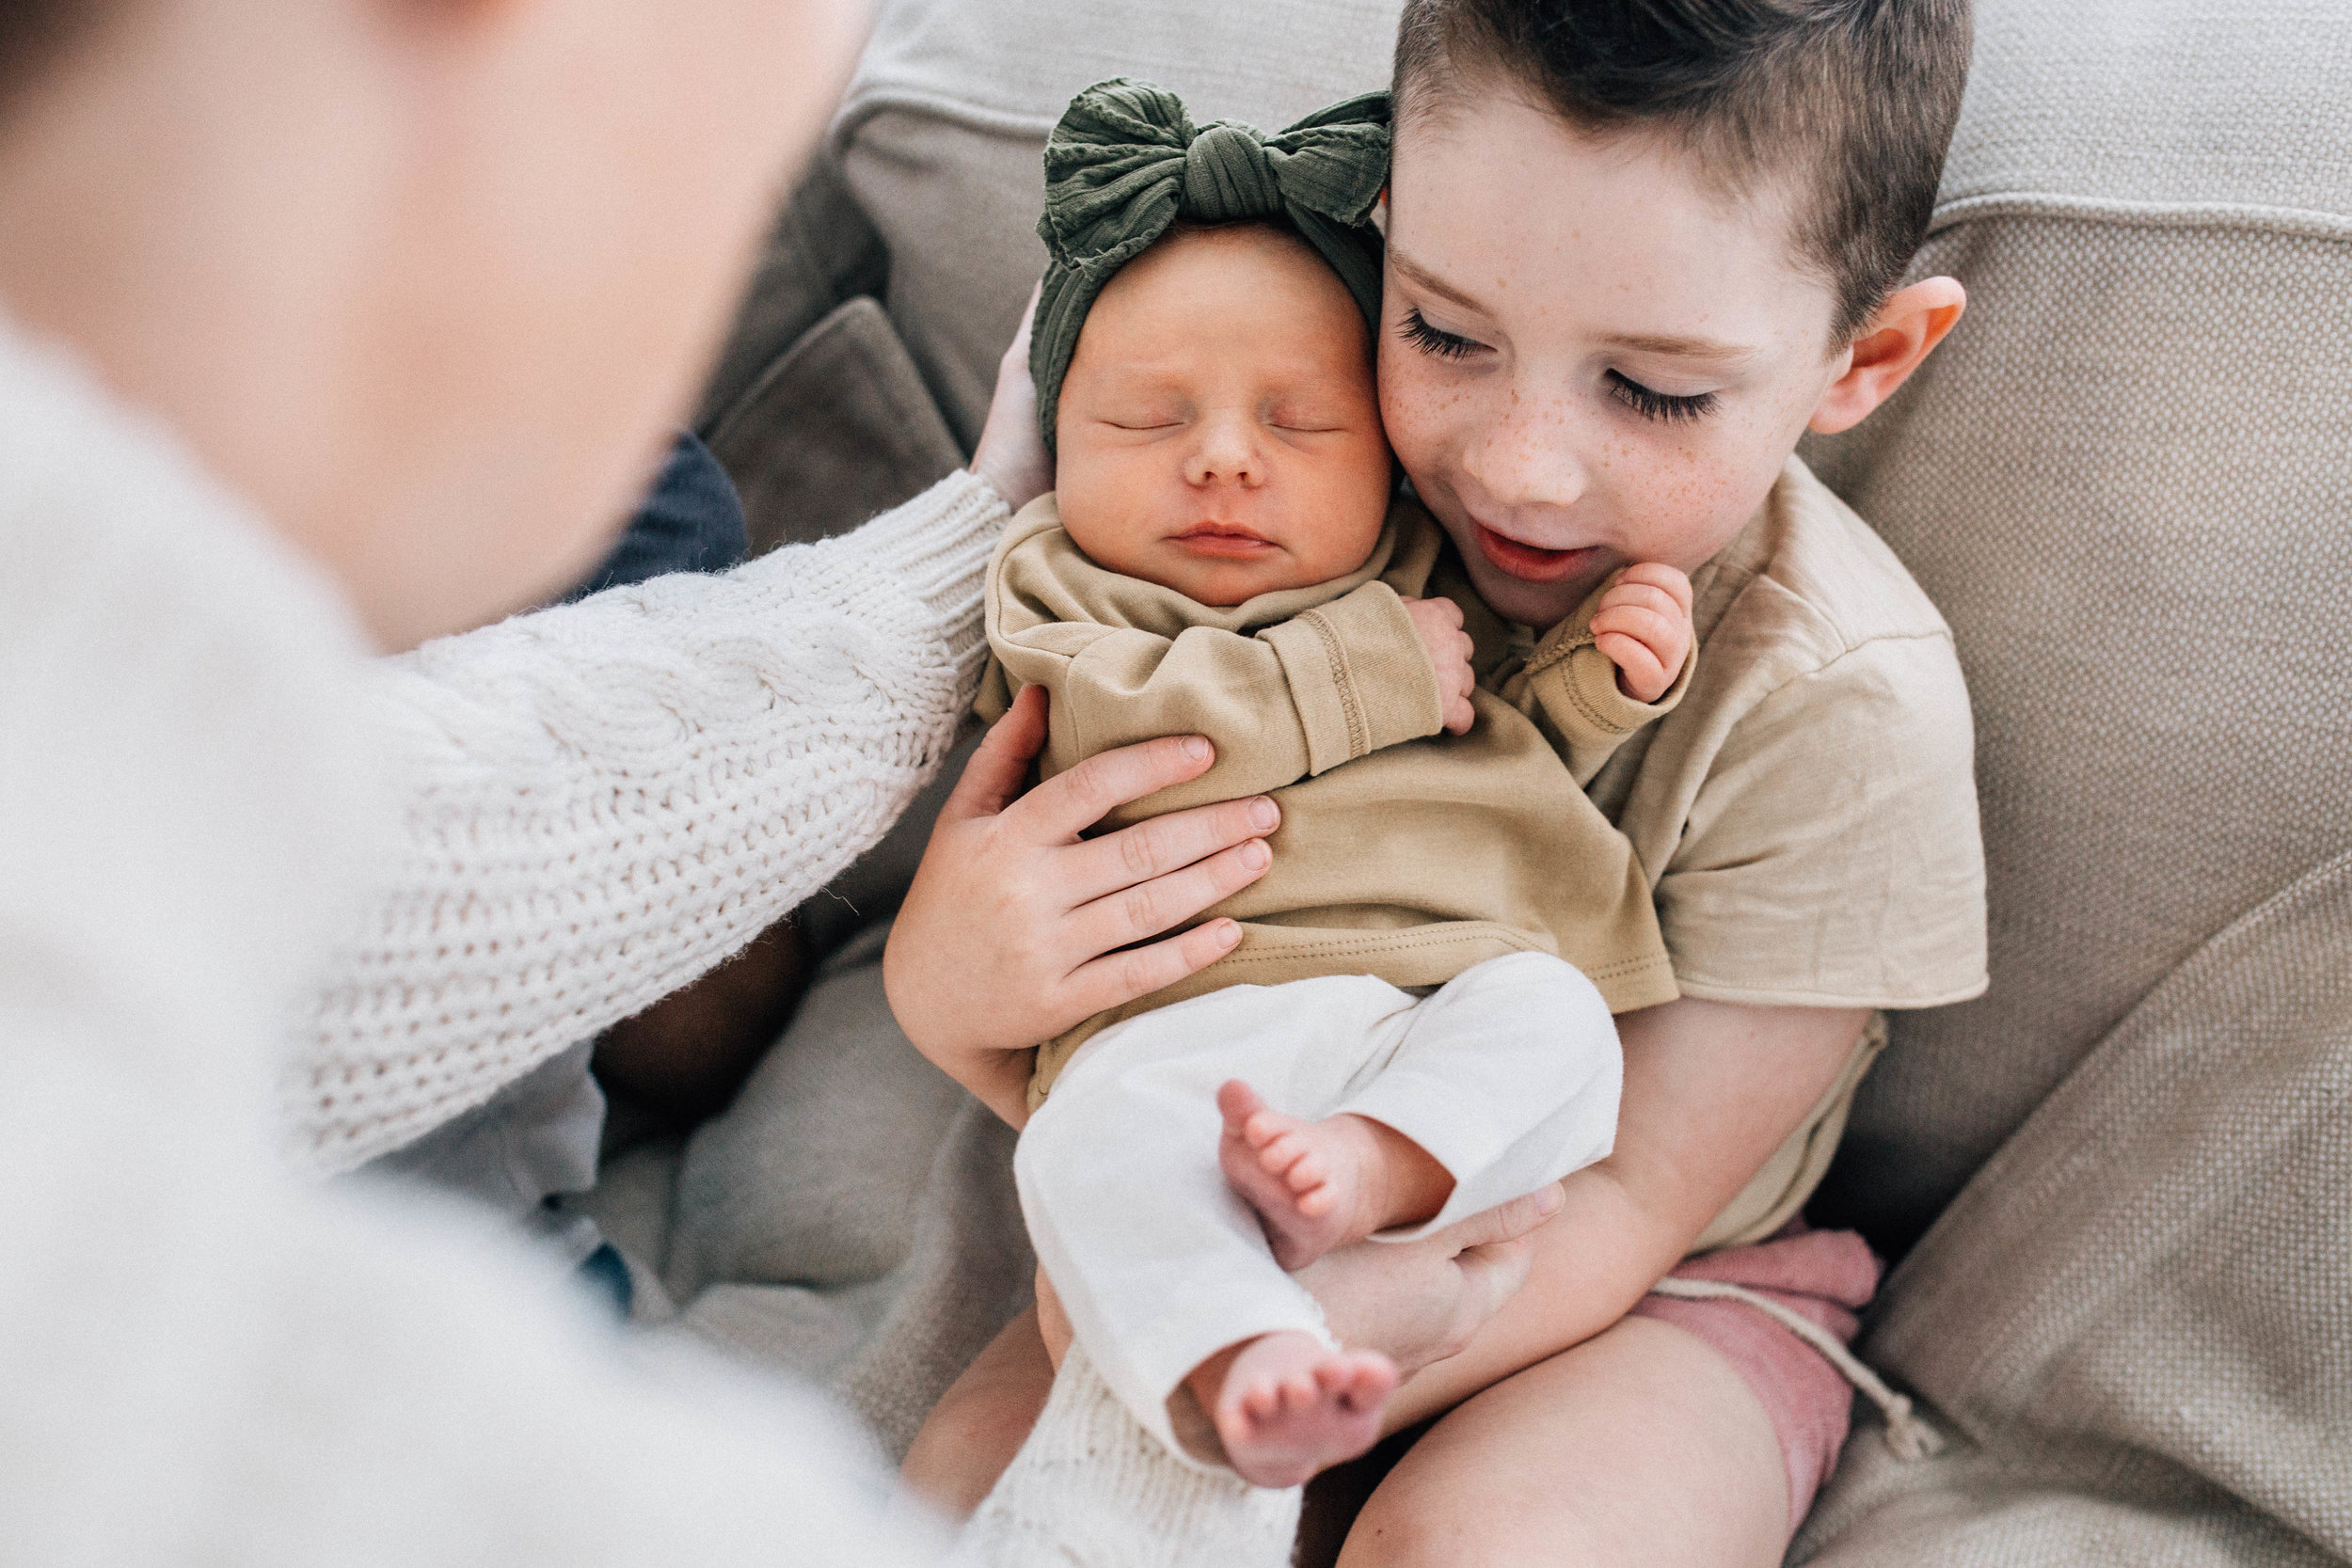 brother-and-baby-sister.jpg